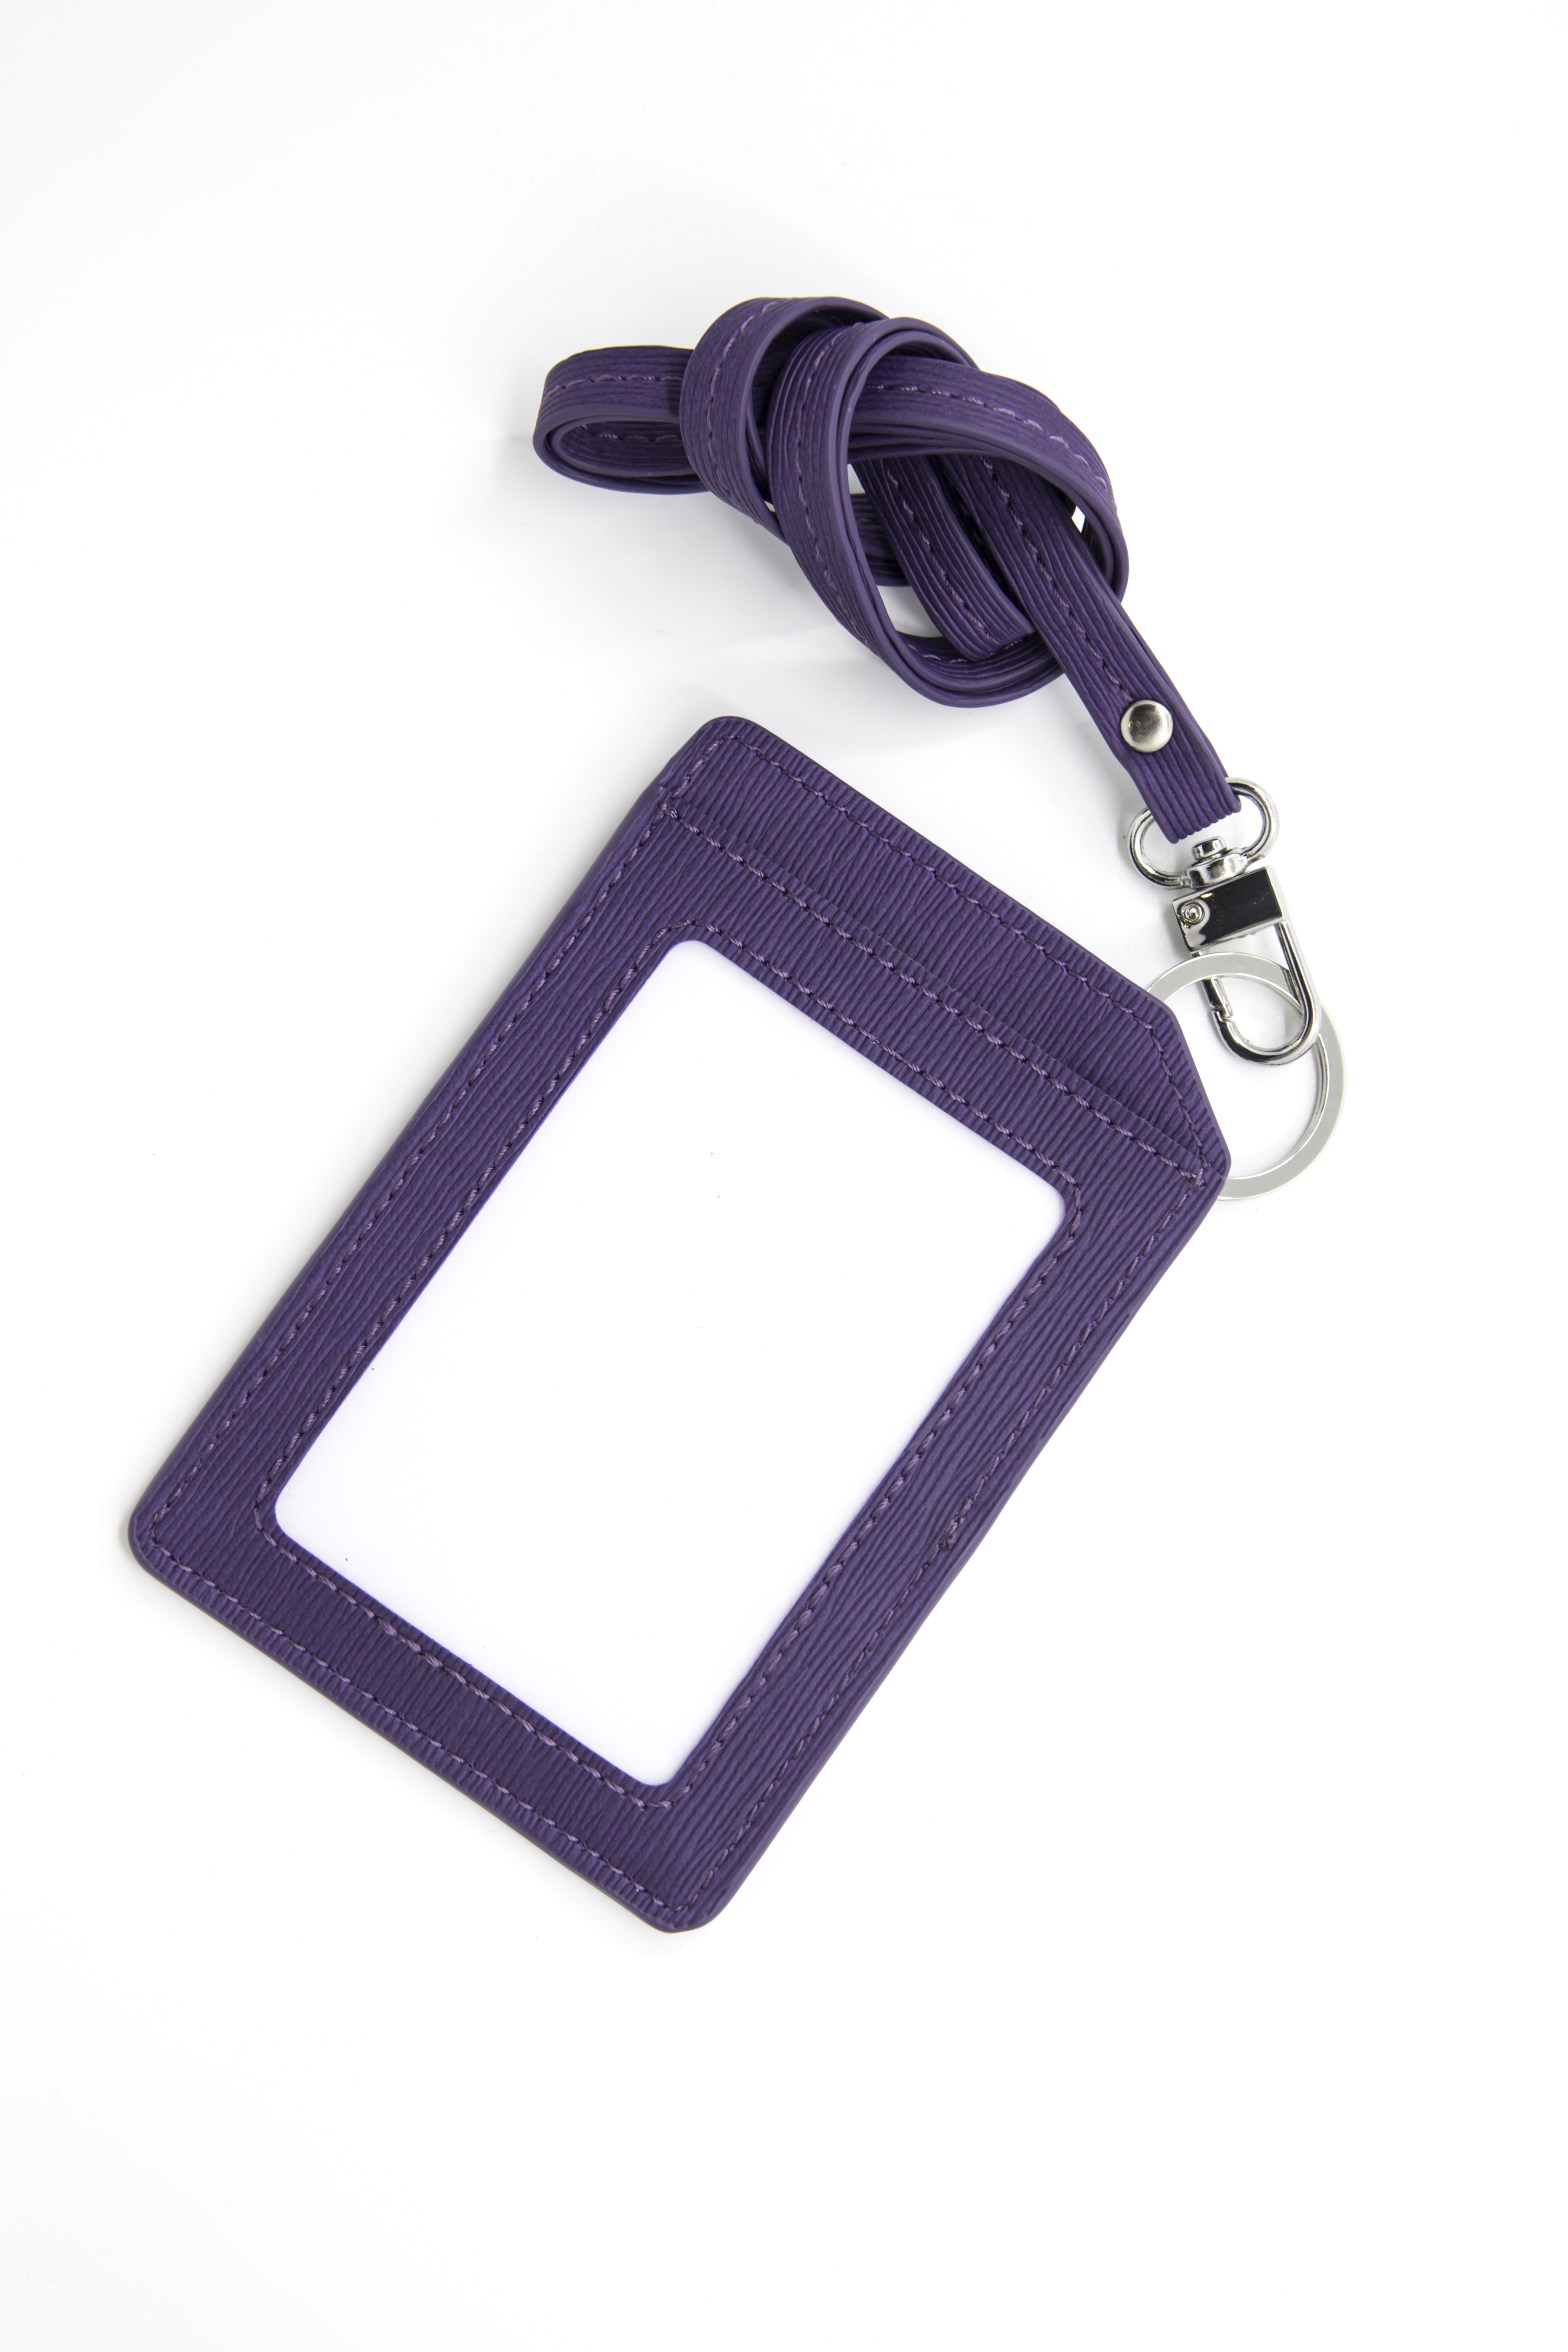 Badge Holder with Flat Lanyard (Purple)